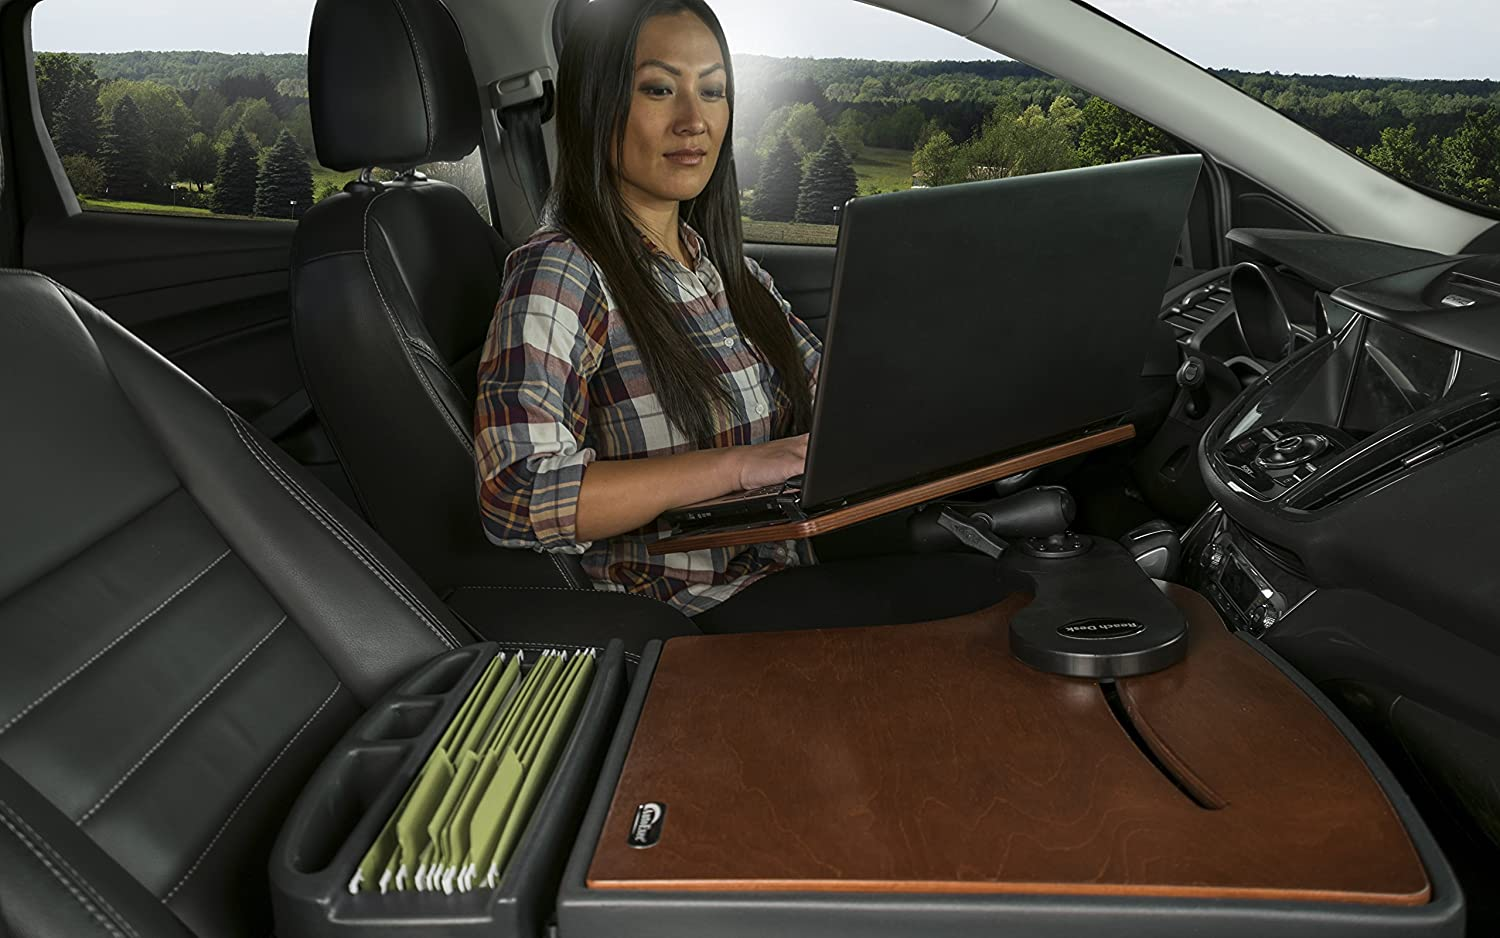 1 Pack AUE10039 Mahogany Finish with 21 Long Extended Arm AutoExec Reach Desk MAH-01 FS Extreme Front Seat Car Desk